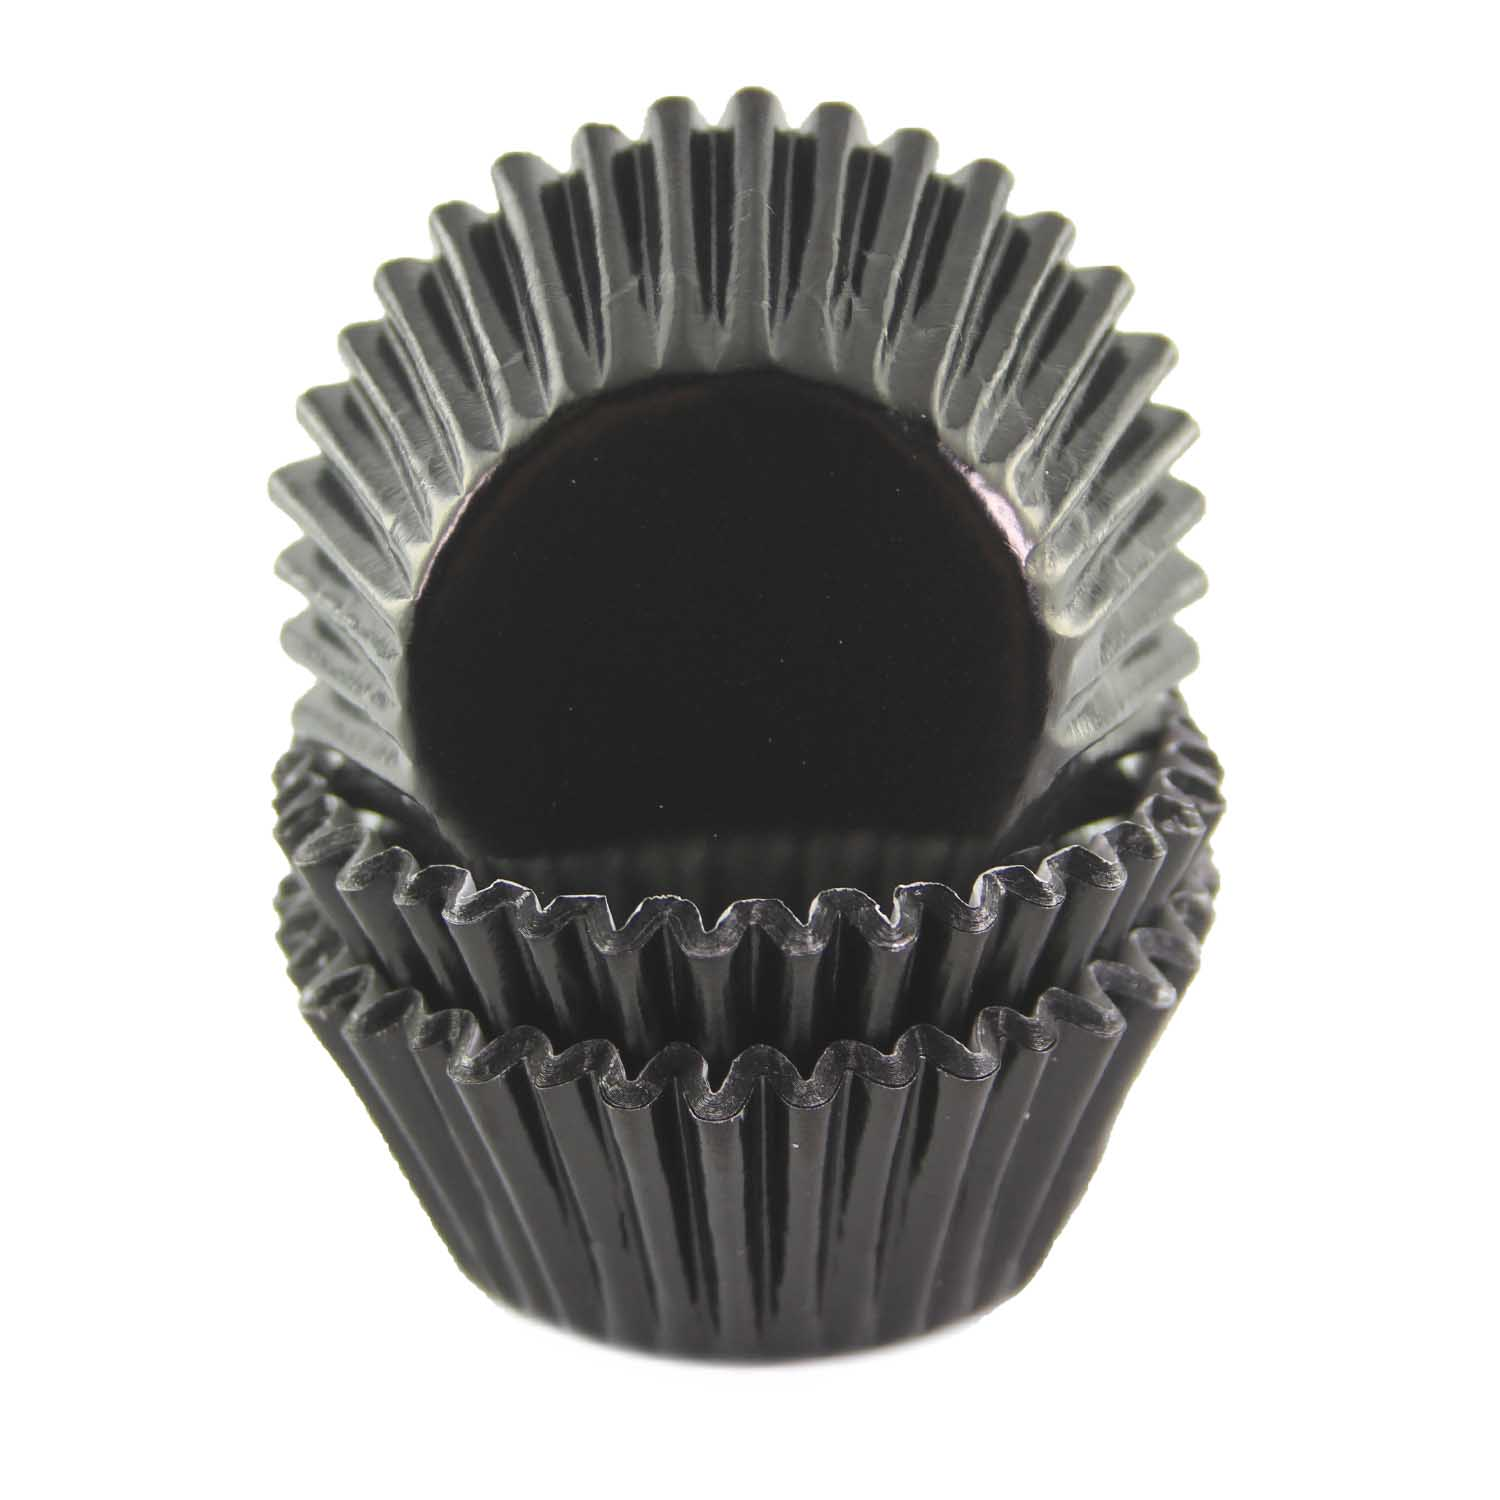 Black Foil Mini Baking Cups